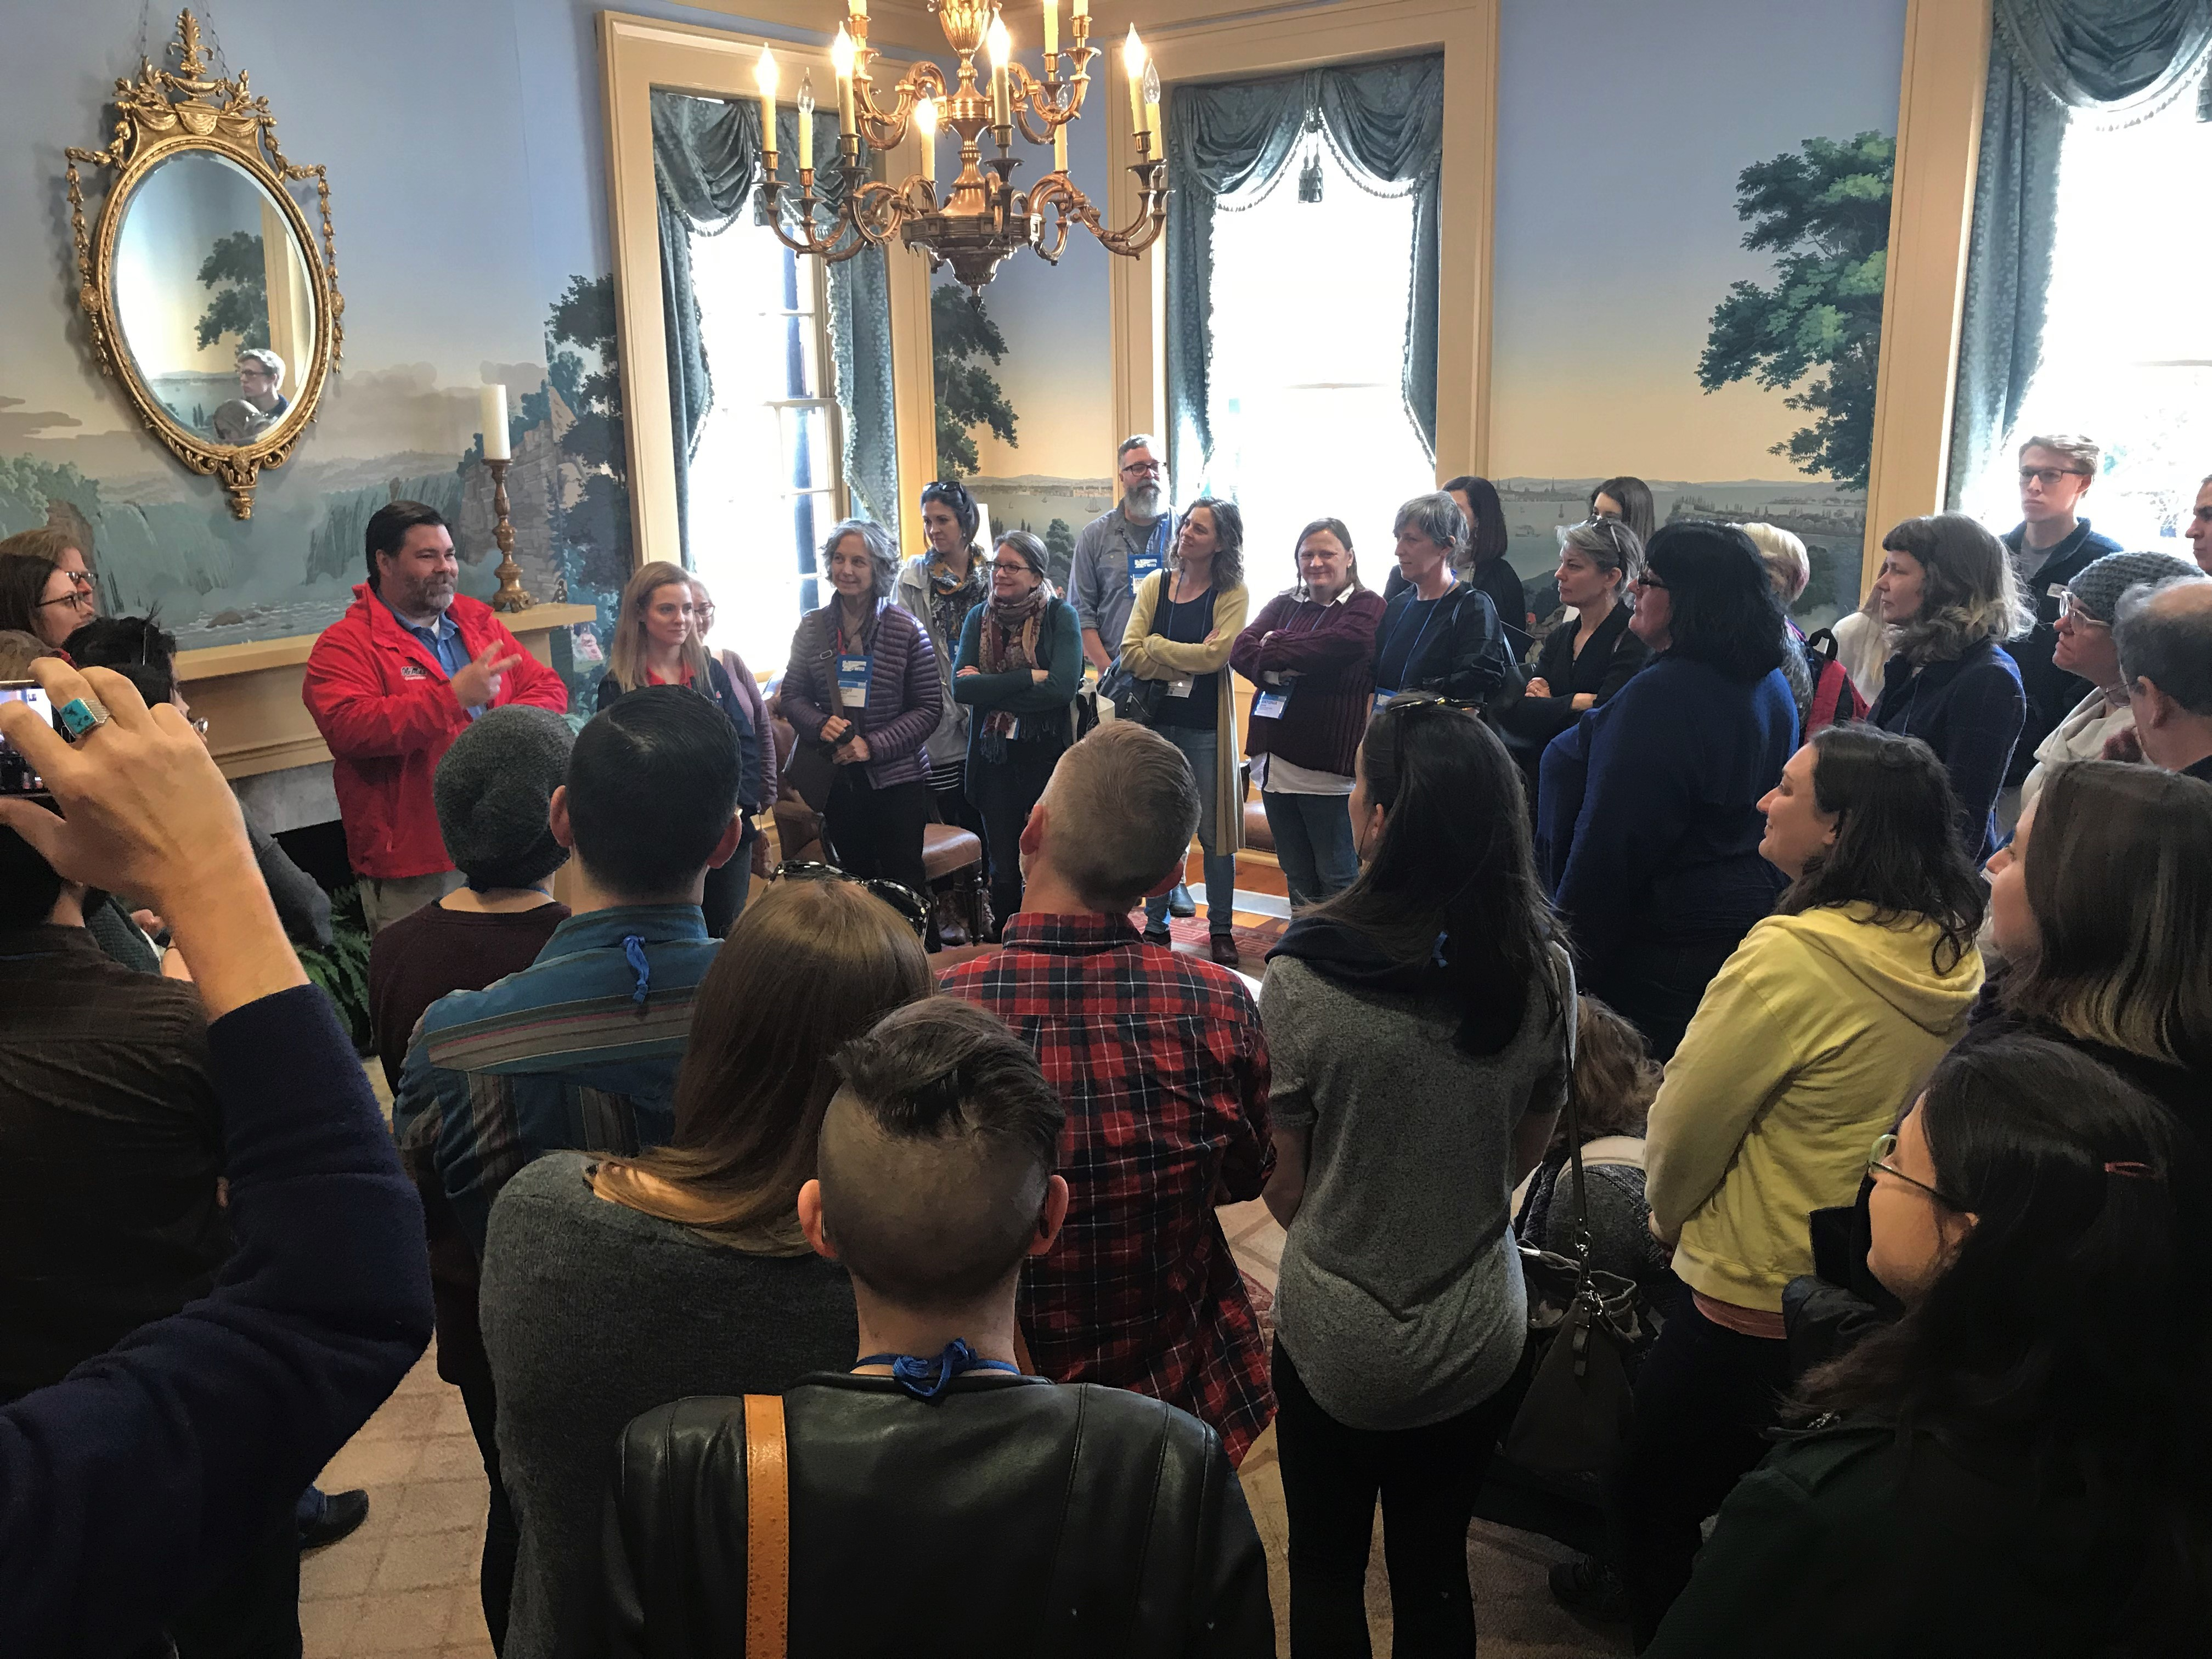 Booksellers toured Ole Miss on a jaunt to Oxford, Mississippi, Monday.